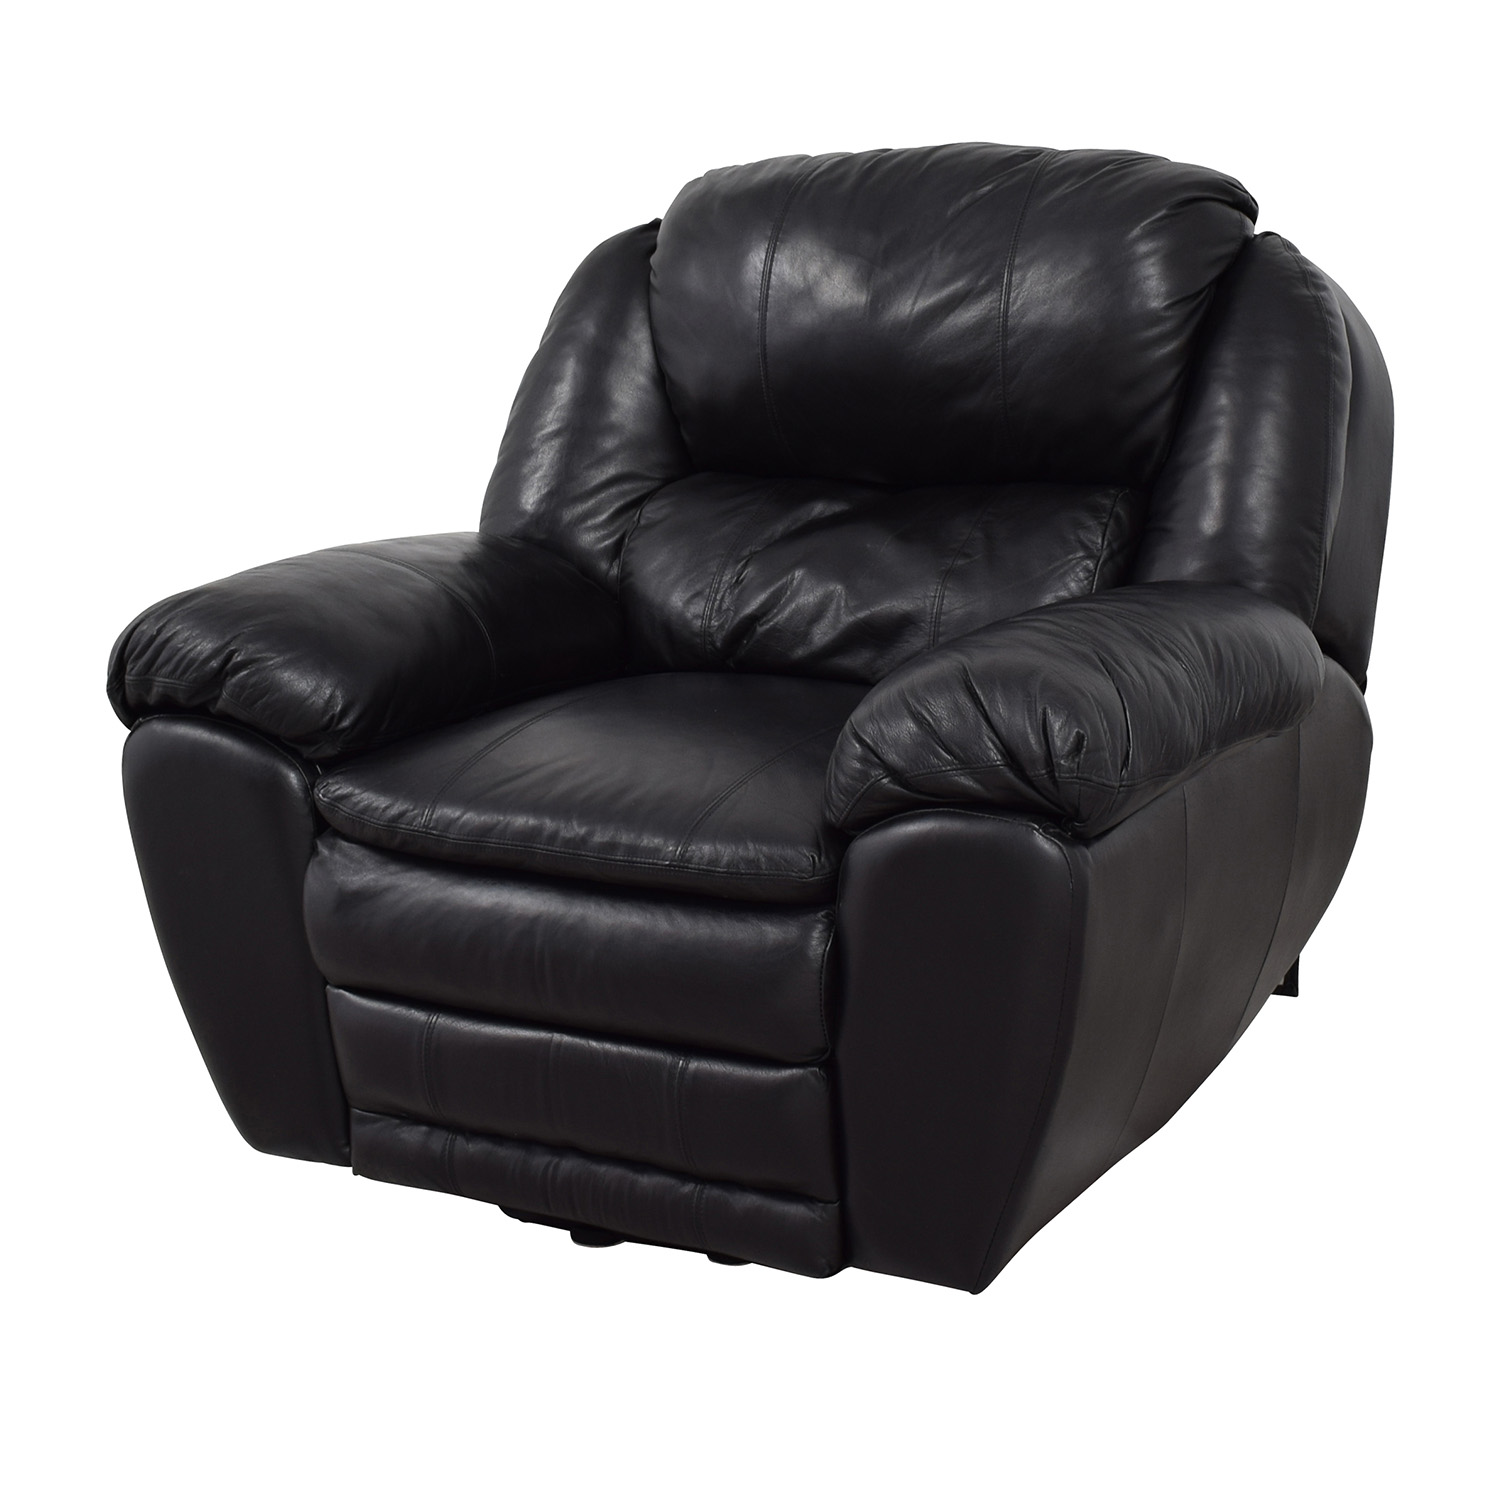 87% OFF - Berkline Berkline Black Leather Rocking Recliner ...